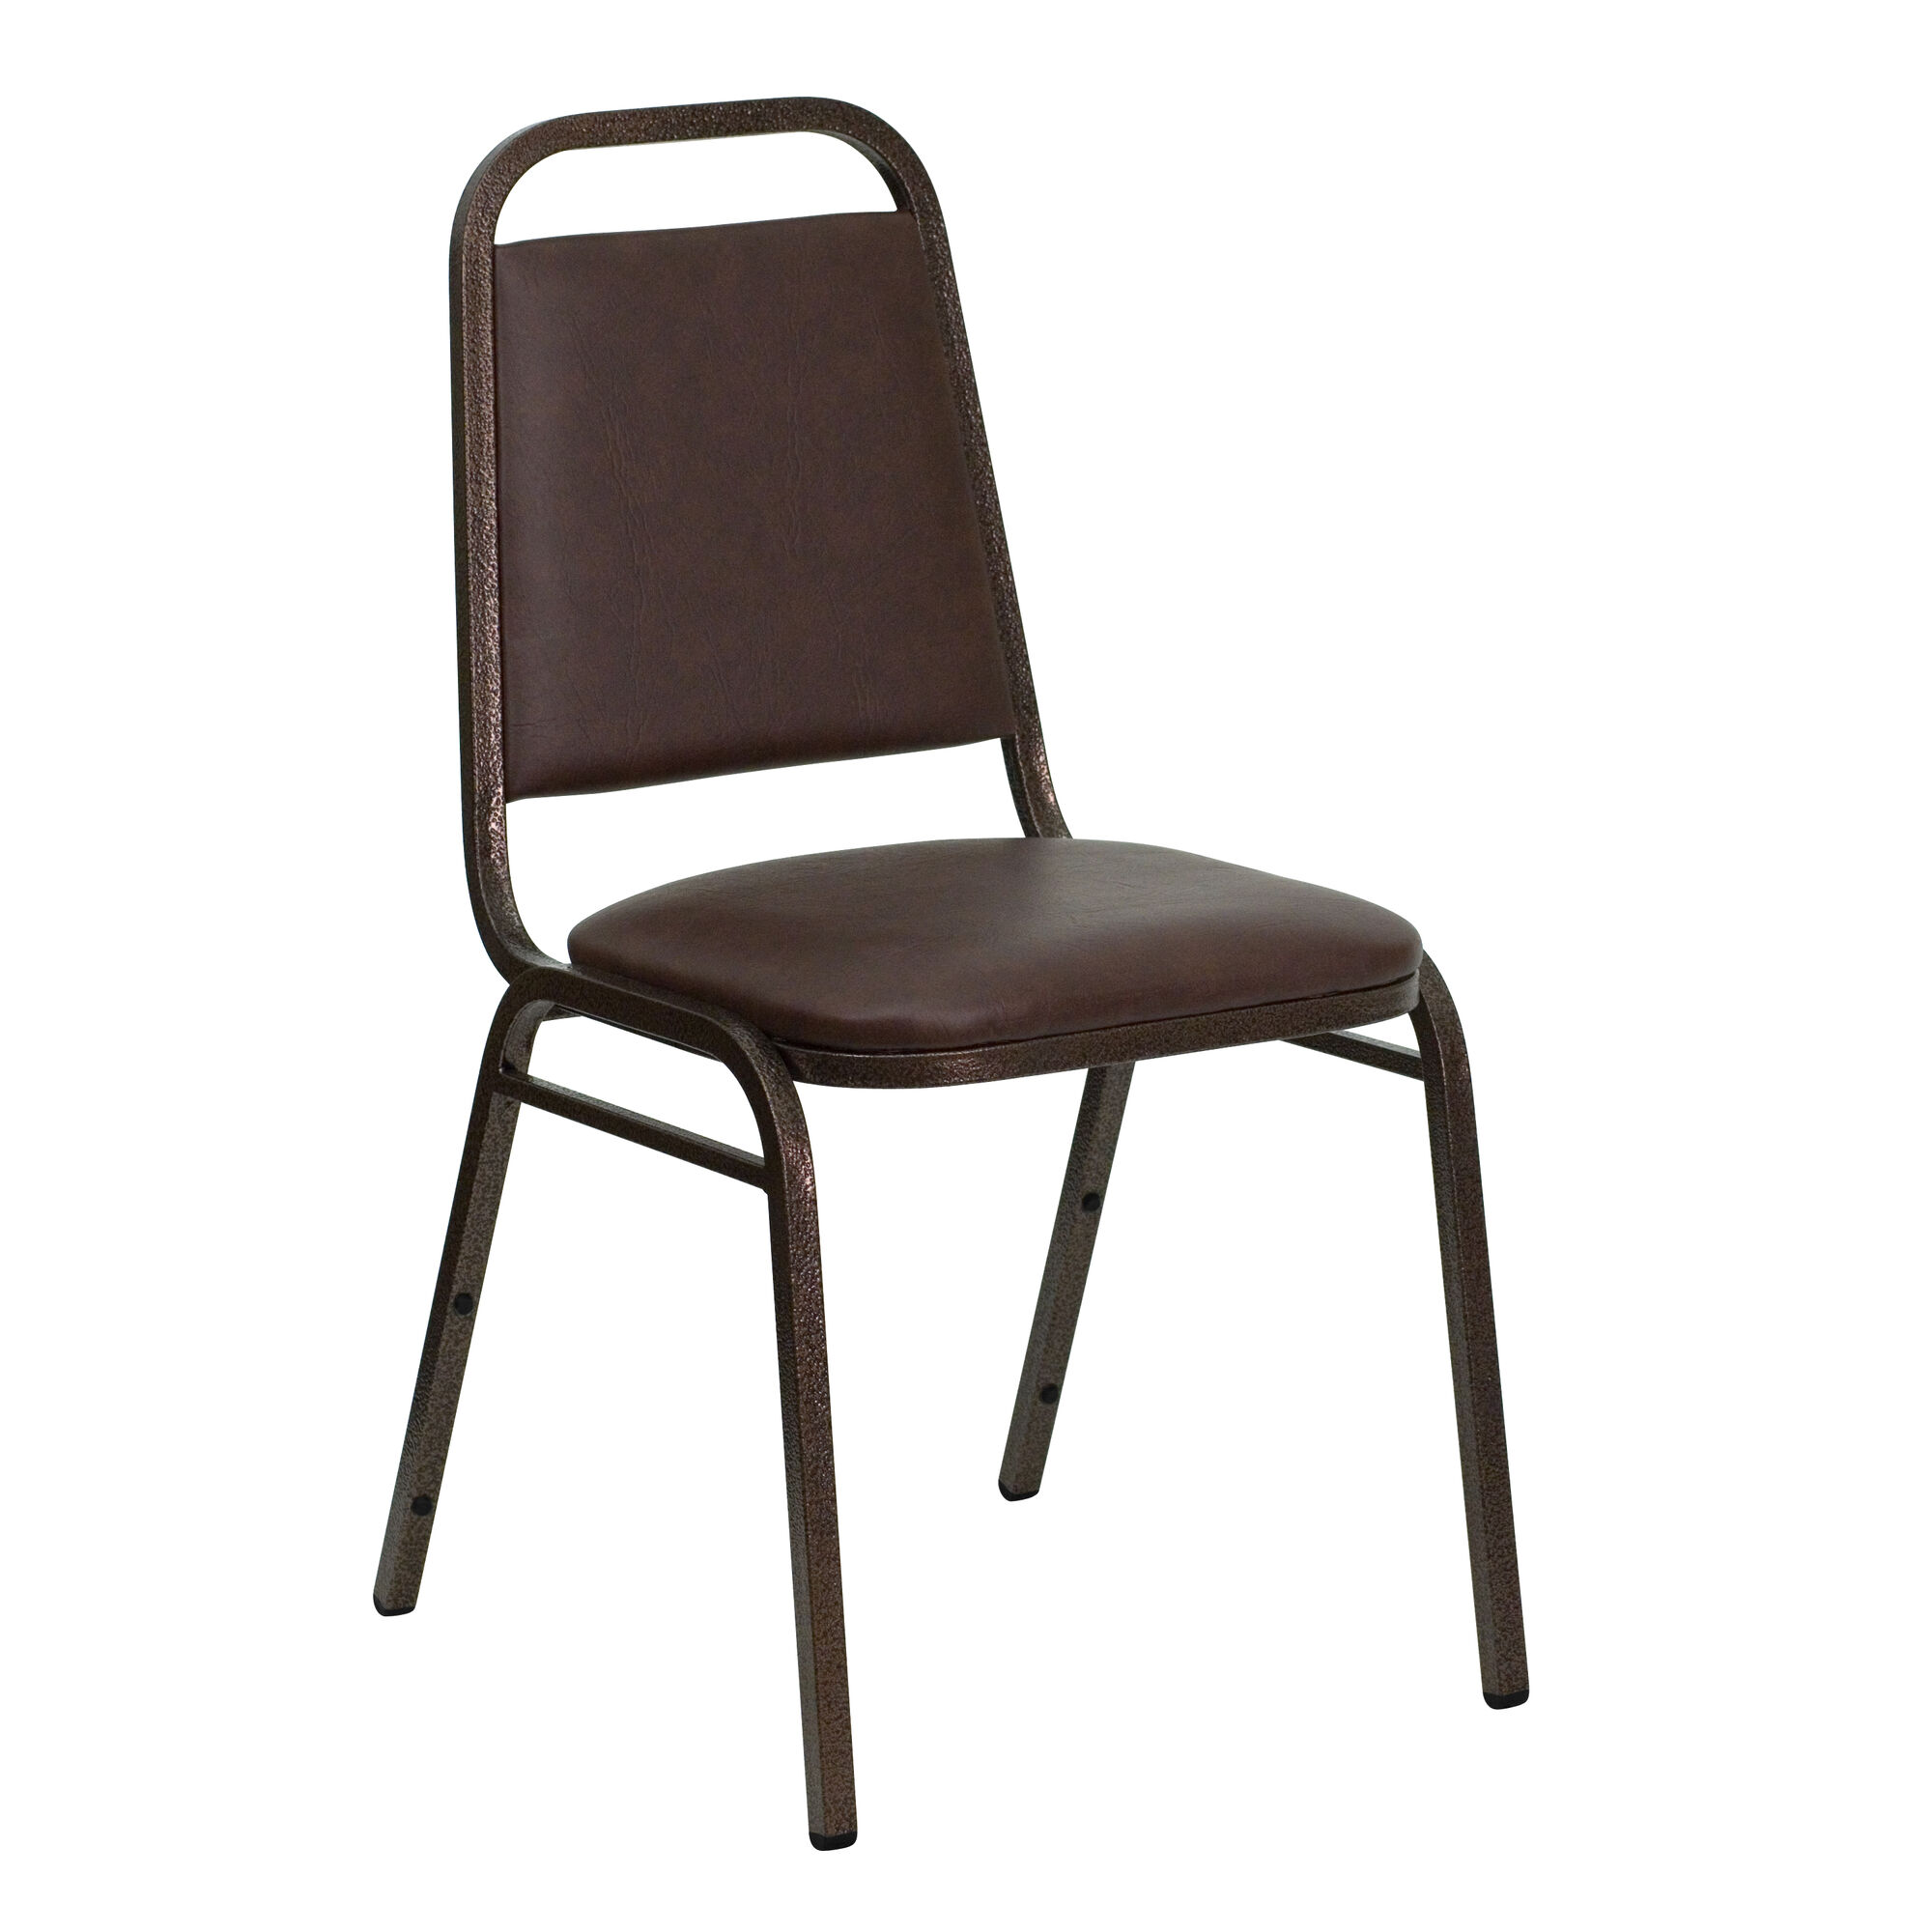 stackchairs4less metal stack chairs